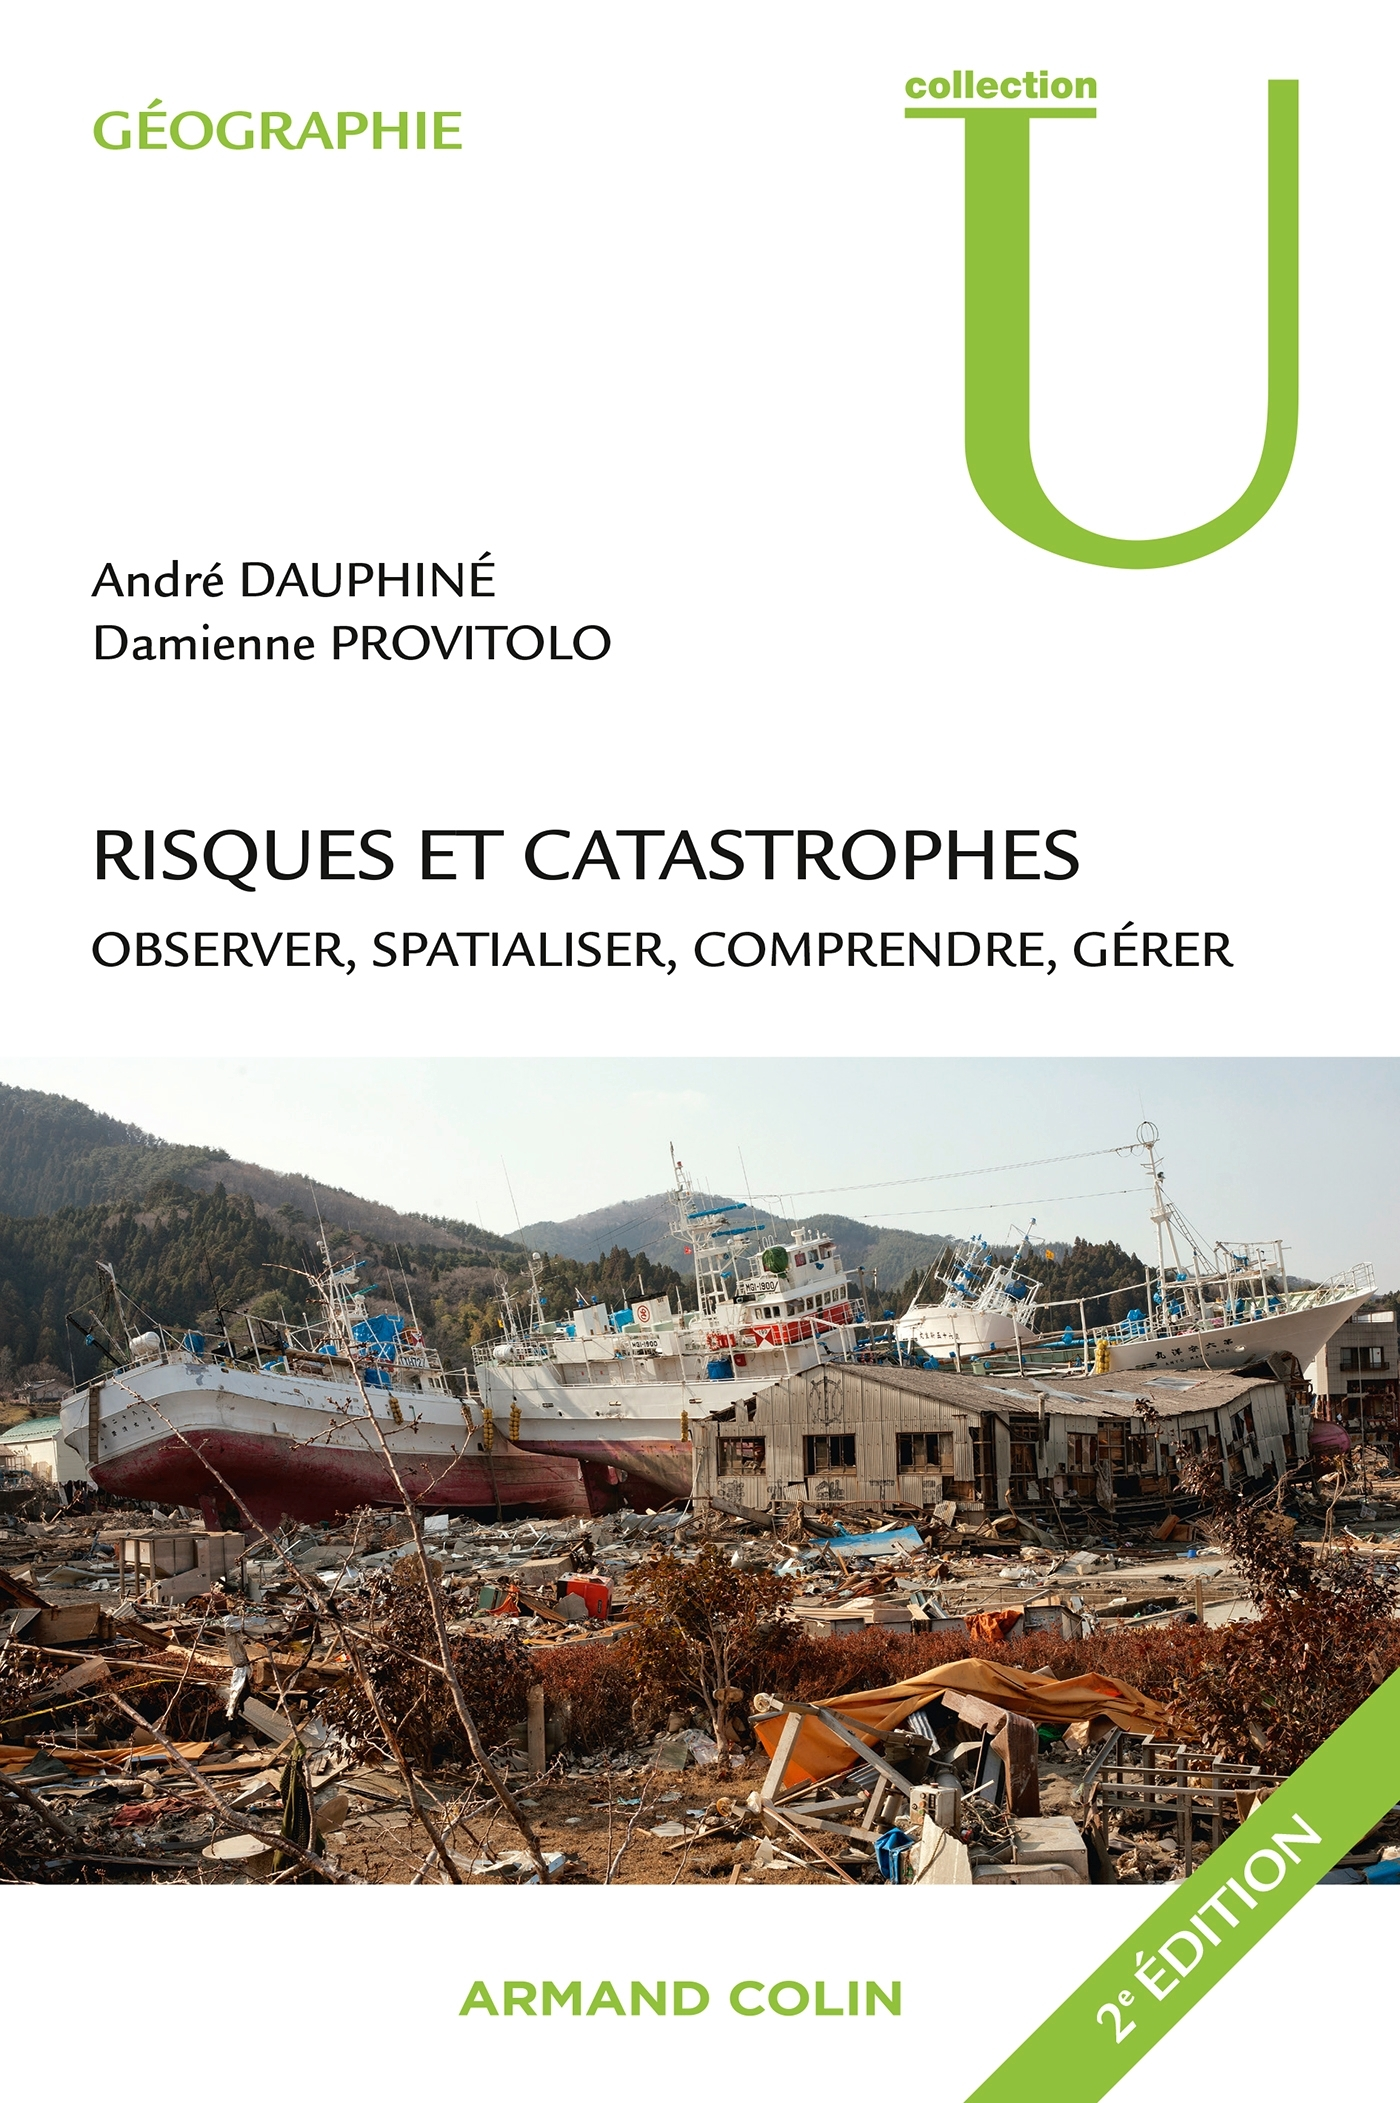 AMENAGEMENT ENVT-MD - T01 - RISQUES ET CATASTROPHES - OBSERVER, SPATIALISER, COMPRENDRE, GERER